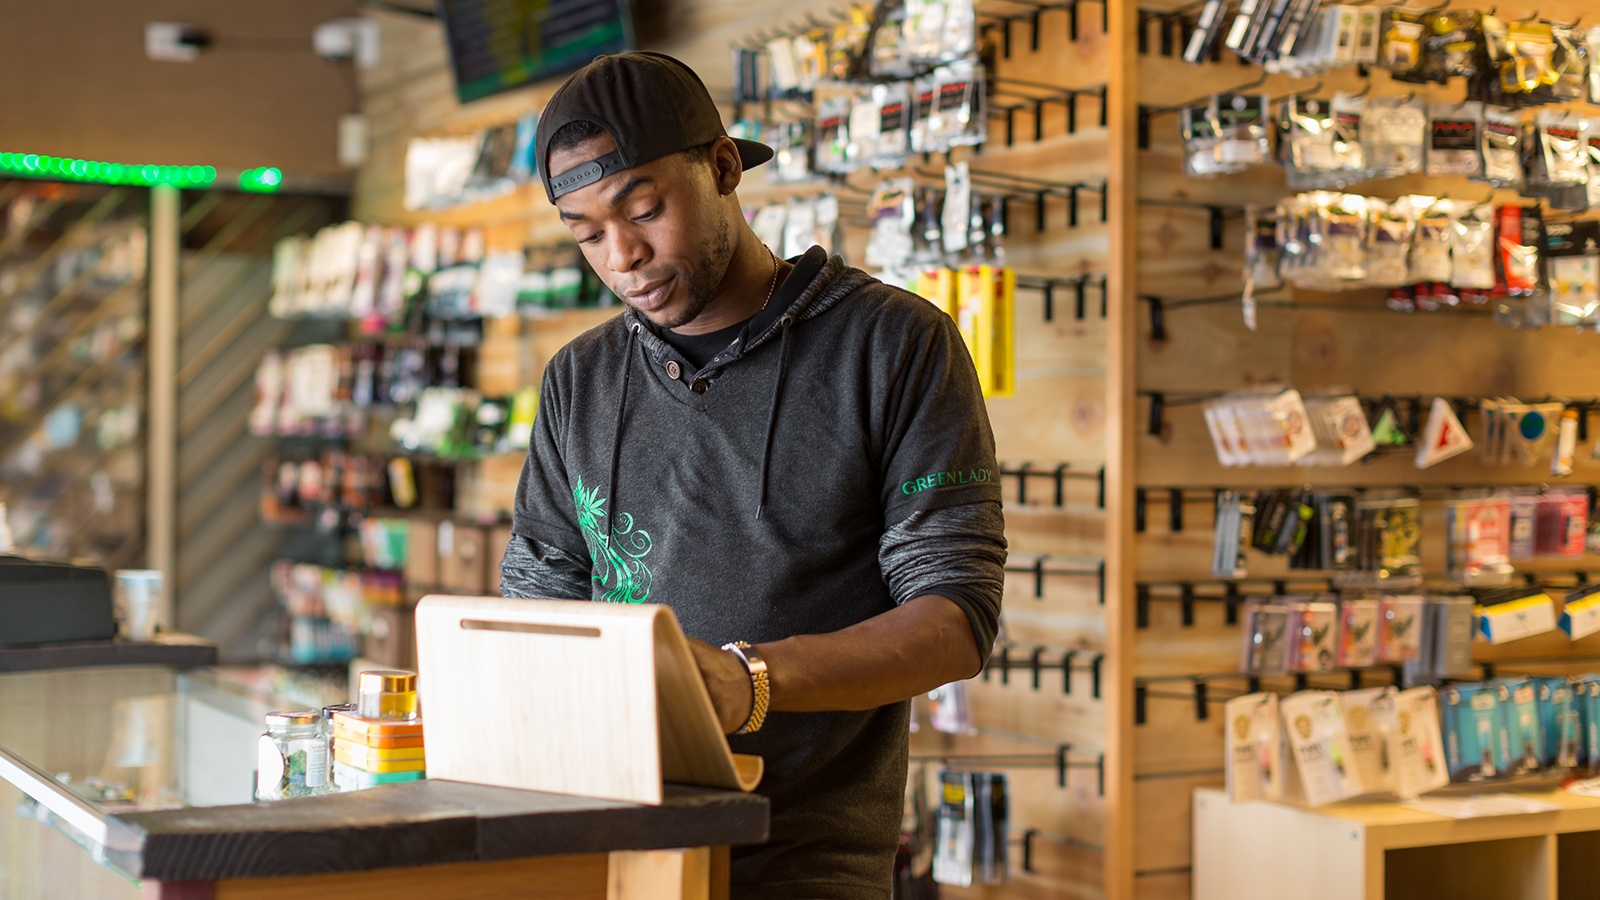 4-Steps-to-Better-Cannabis-Retail-Promotions.jpg